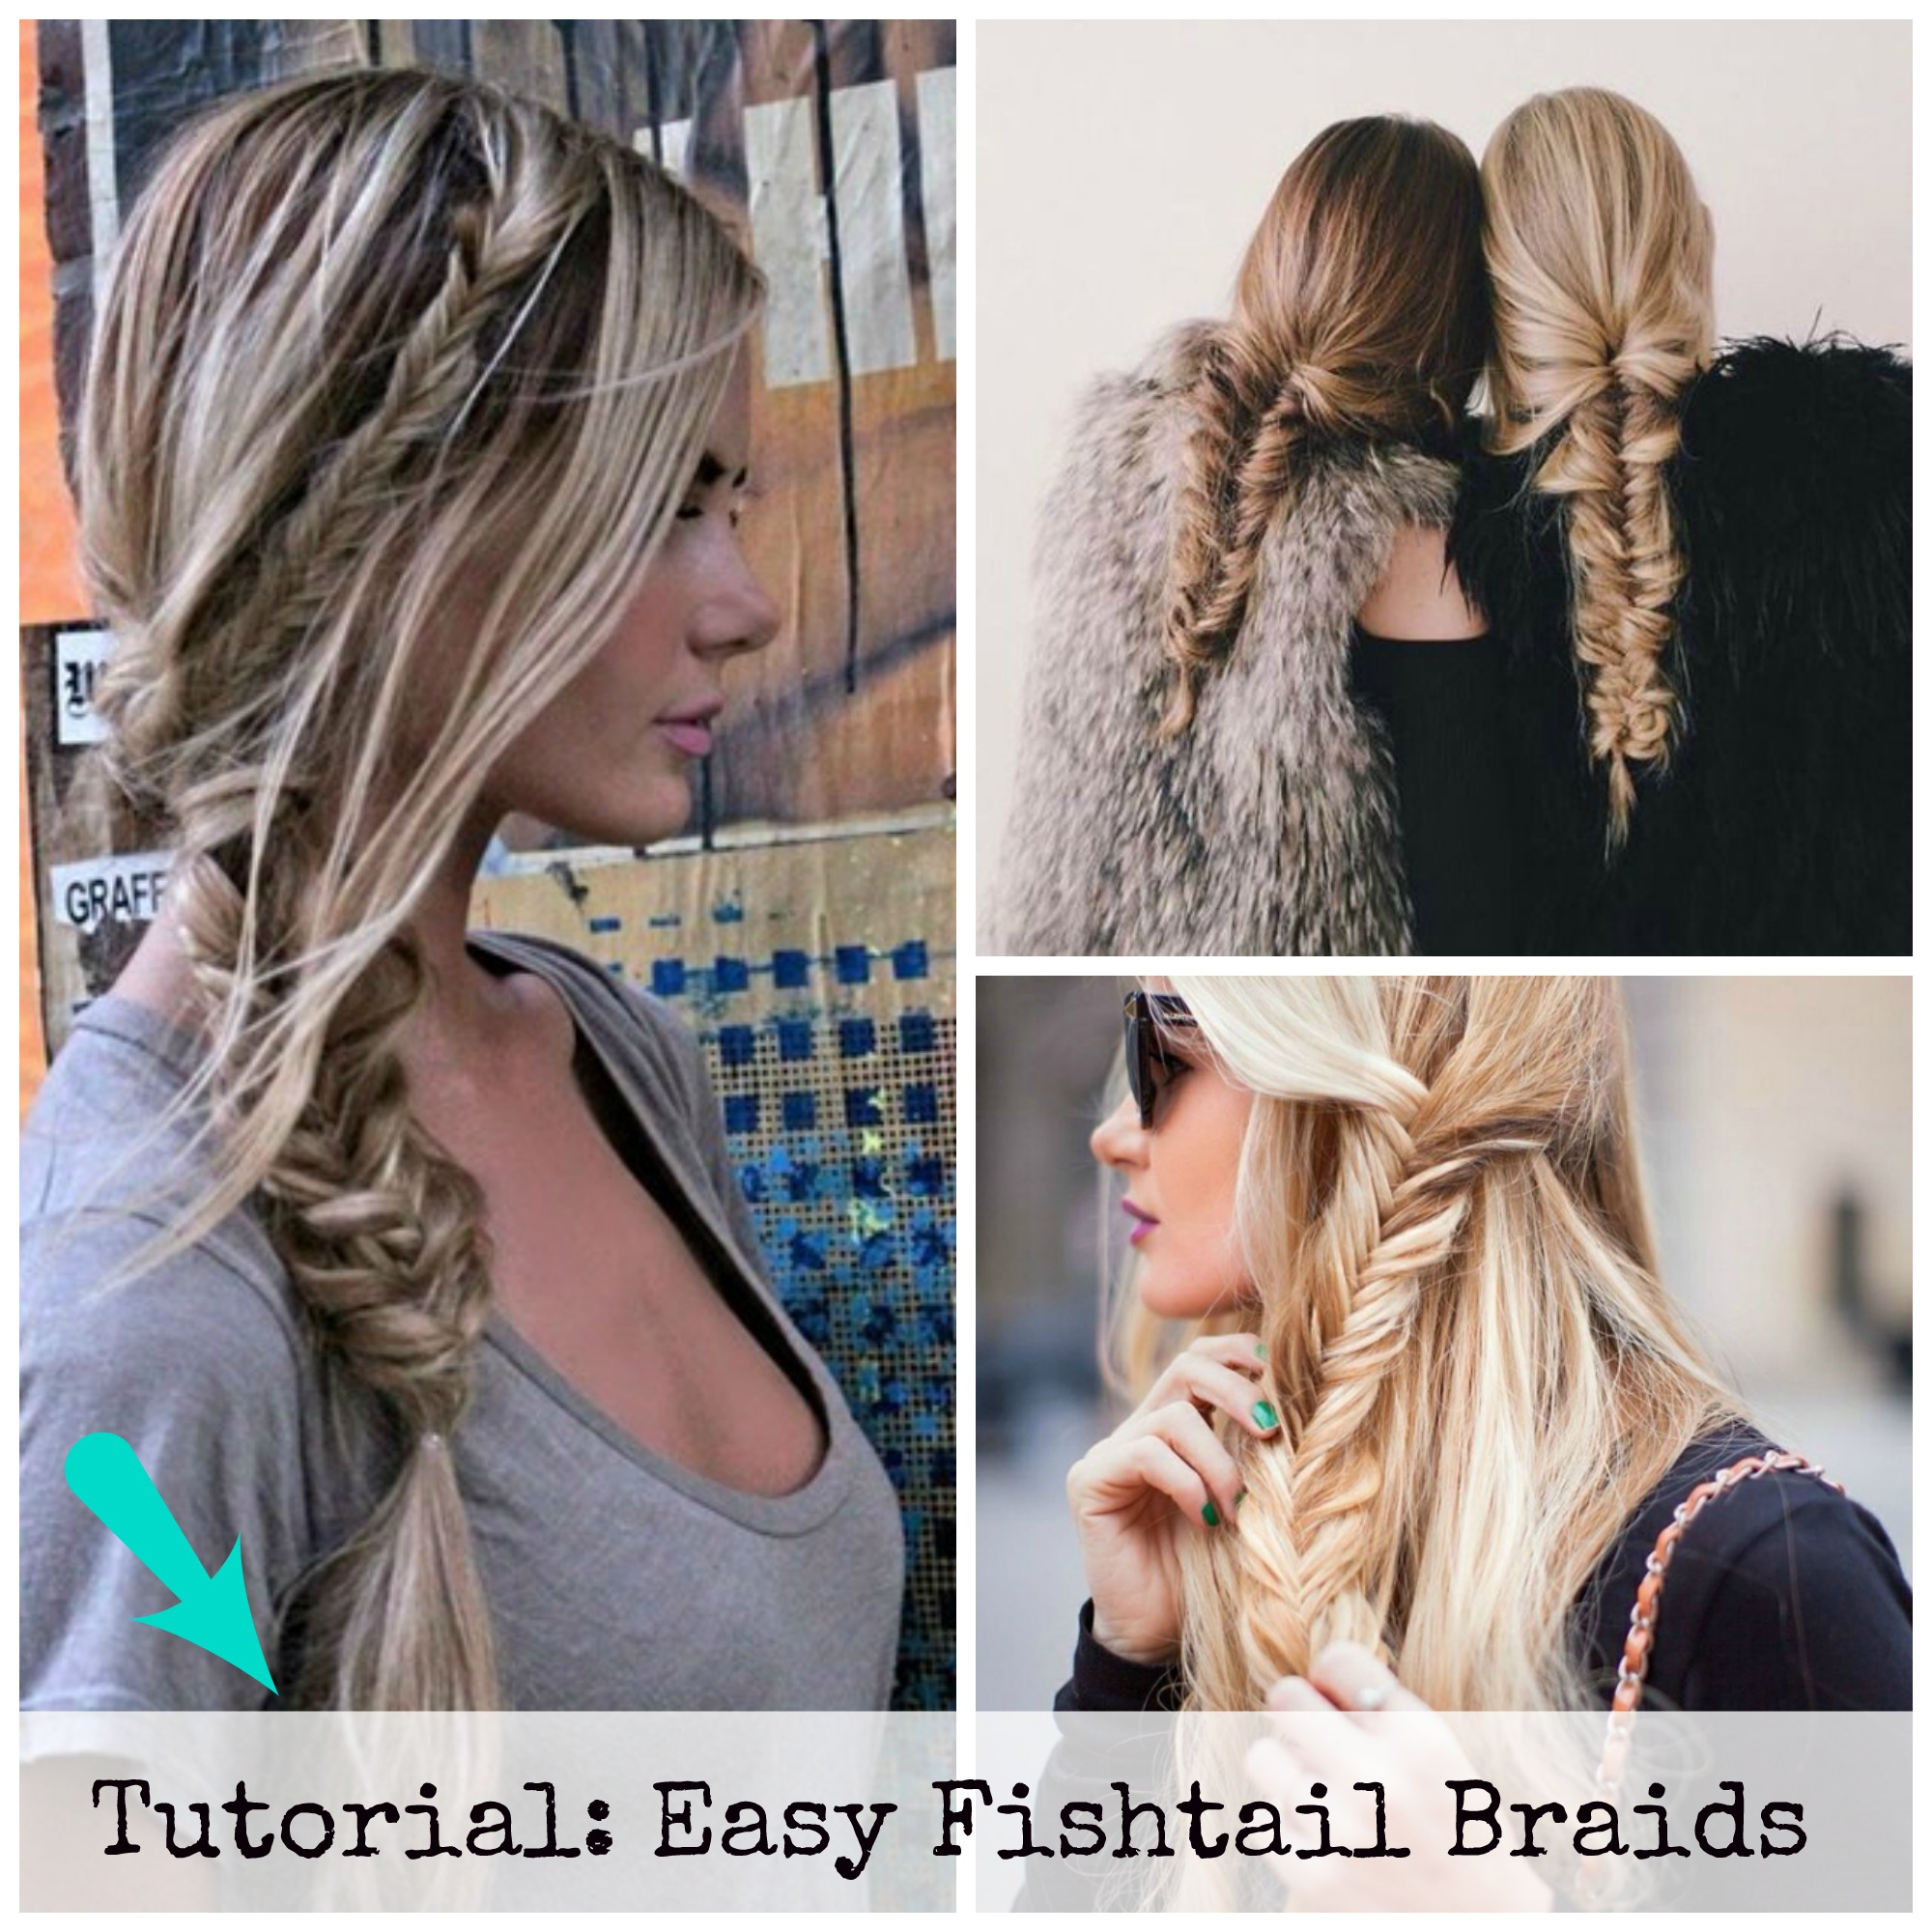 How to do a fishtail braid?